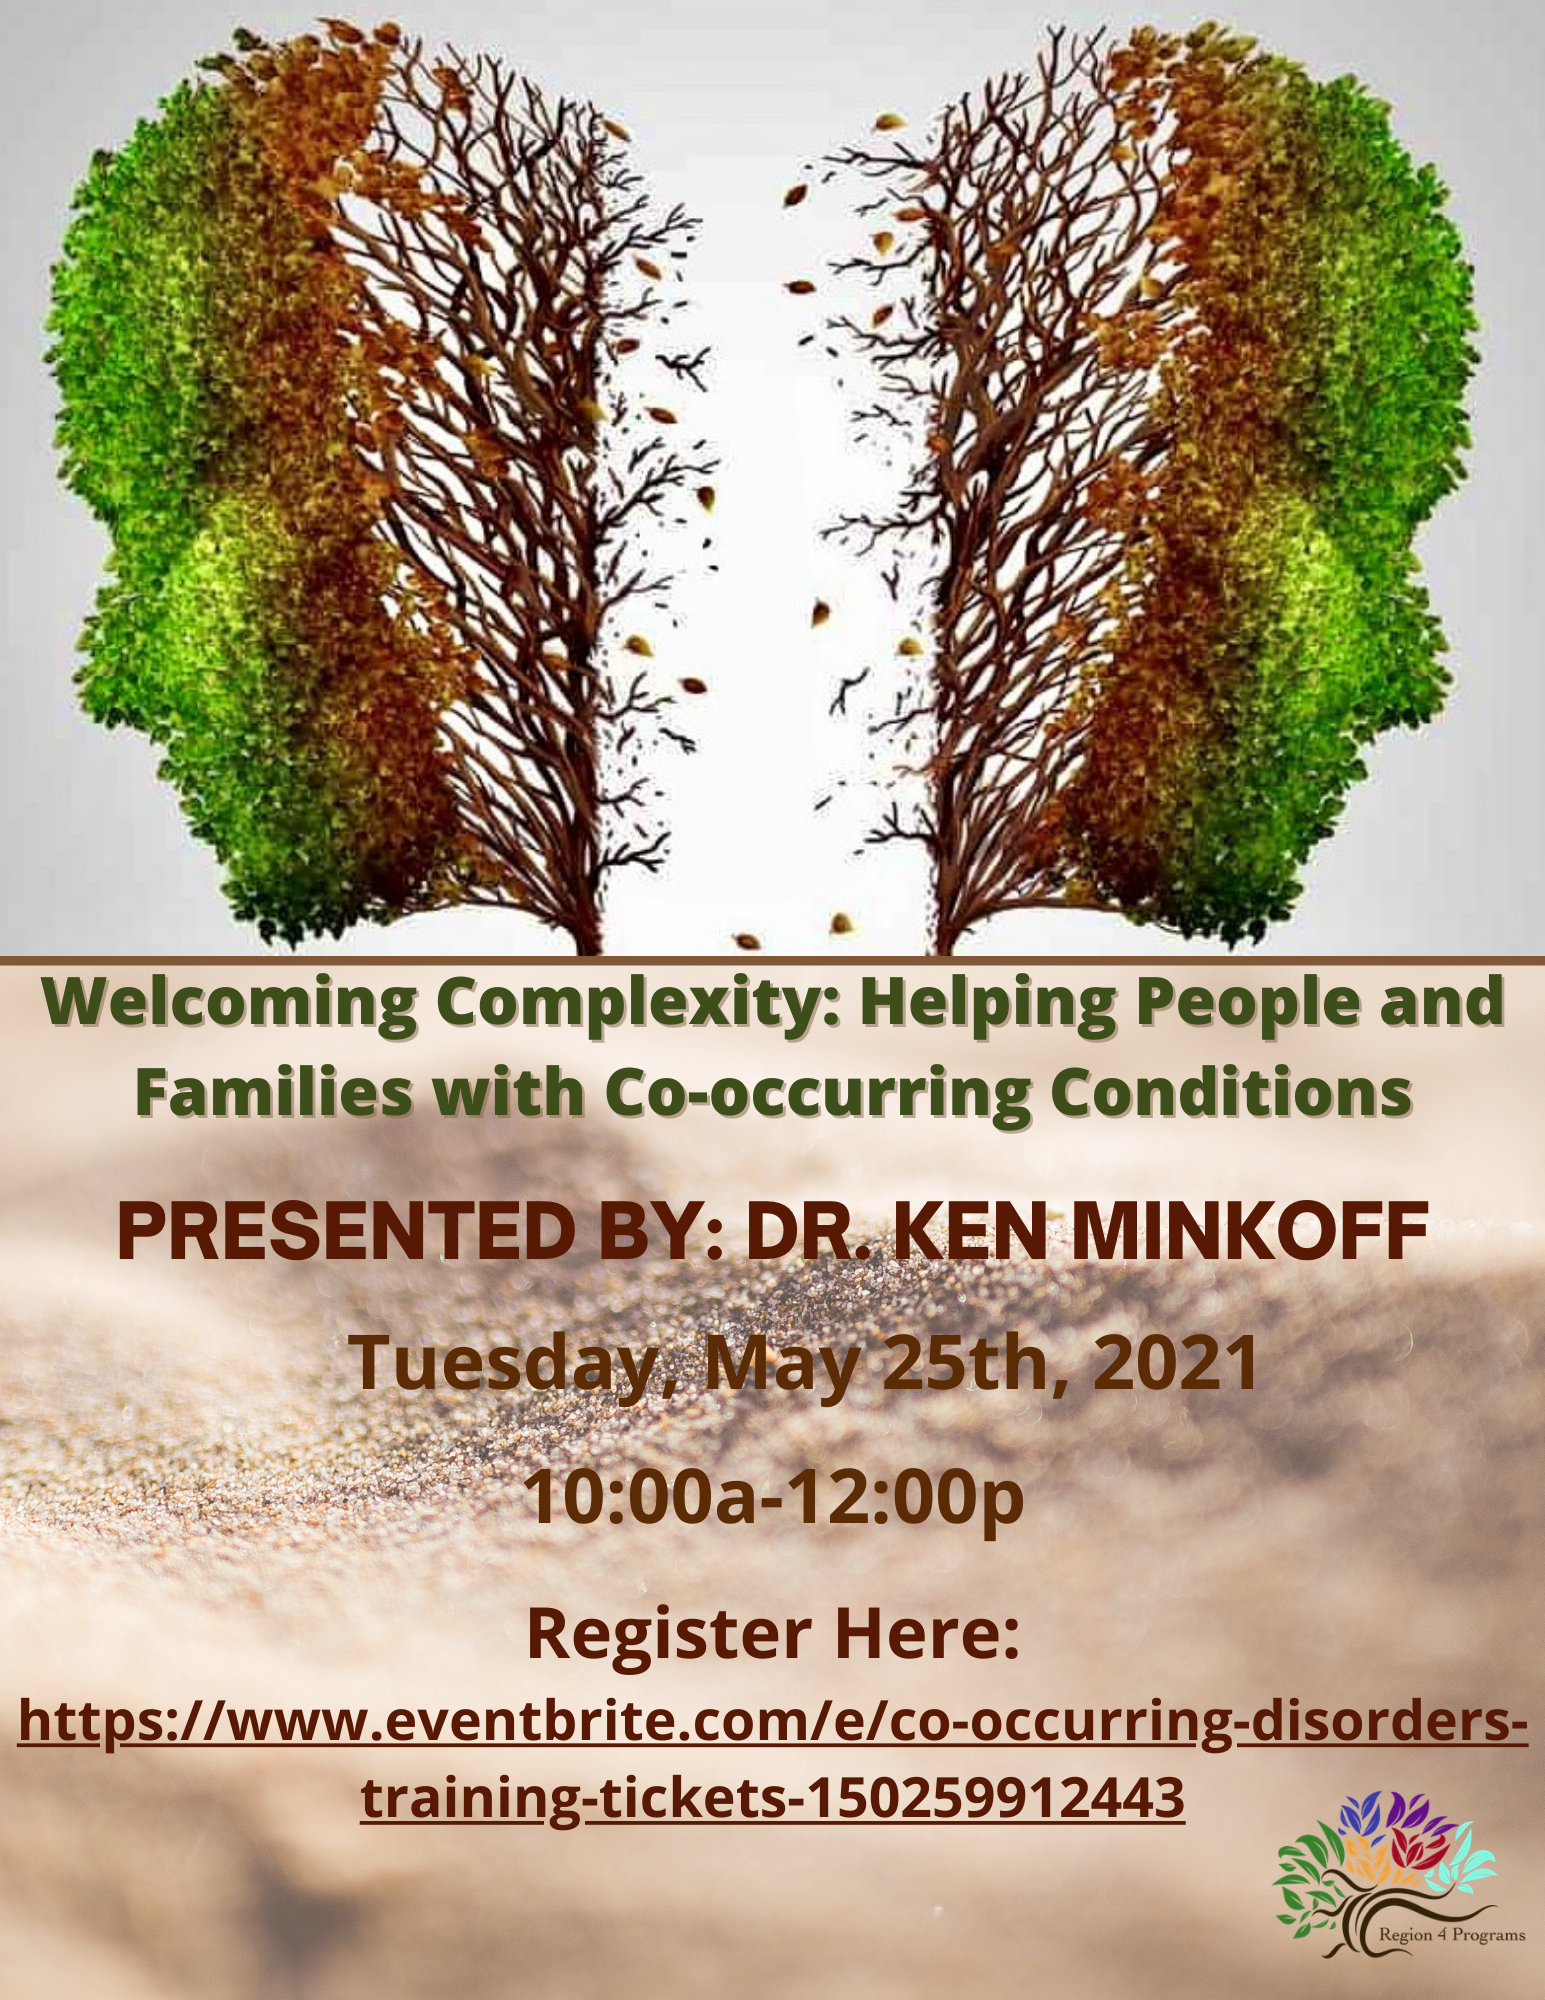 Welcoming-Complexity-Helping-People-and-Families-with-Co-occurring-Conditions